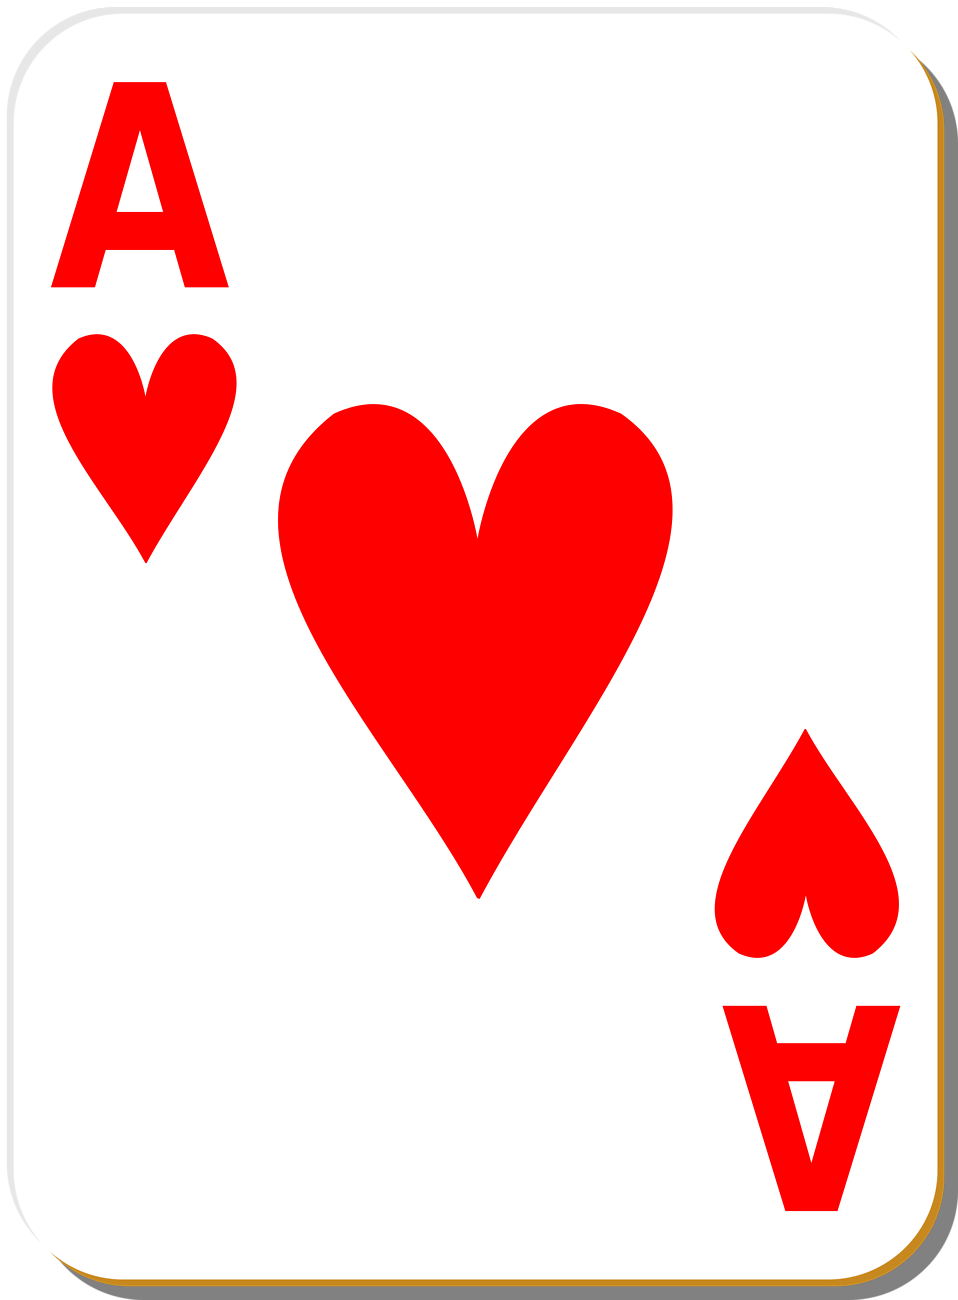 small resolution of ace heart playing card clip art